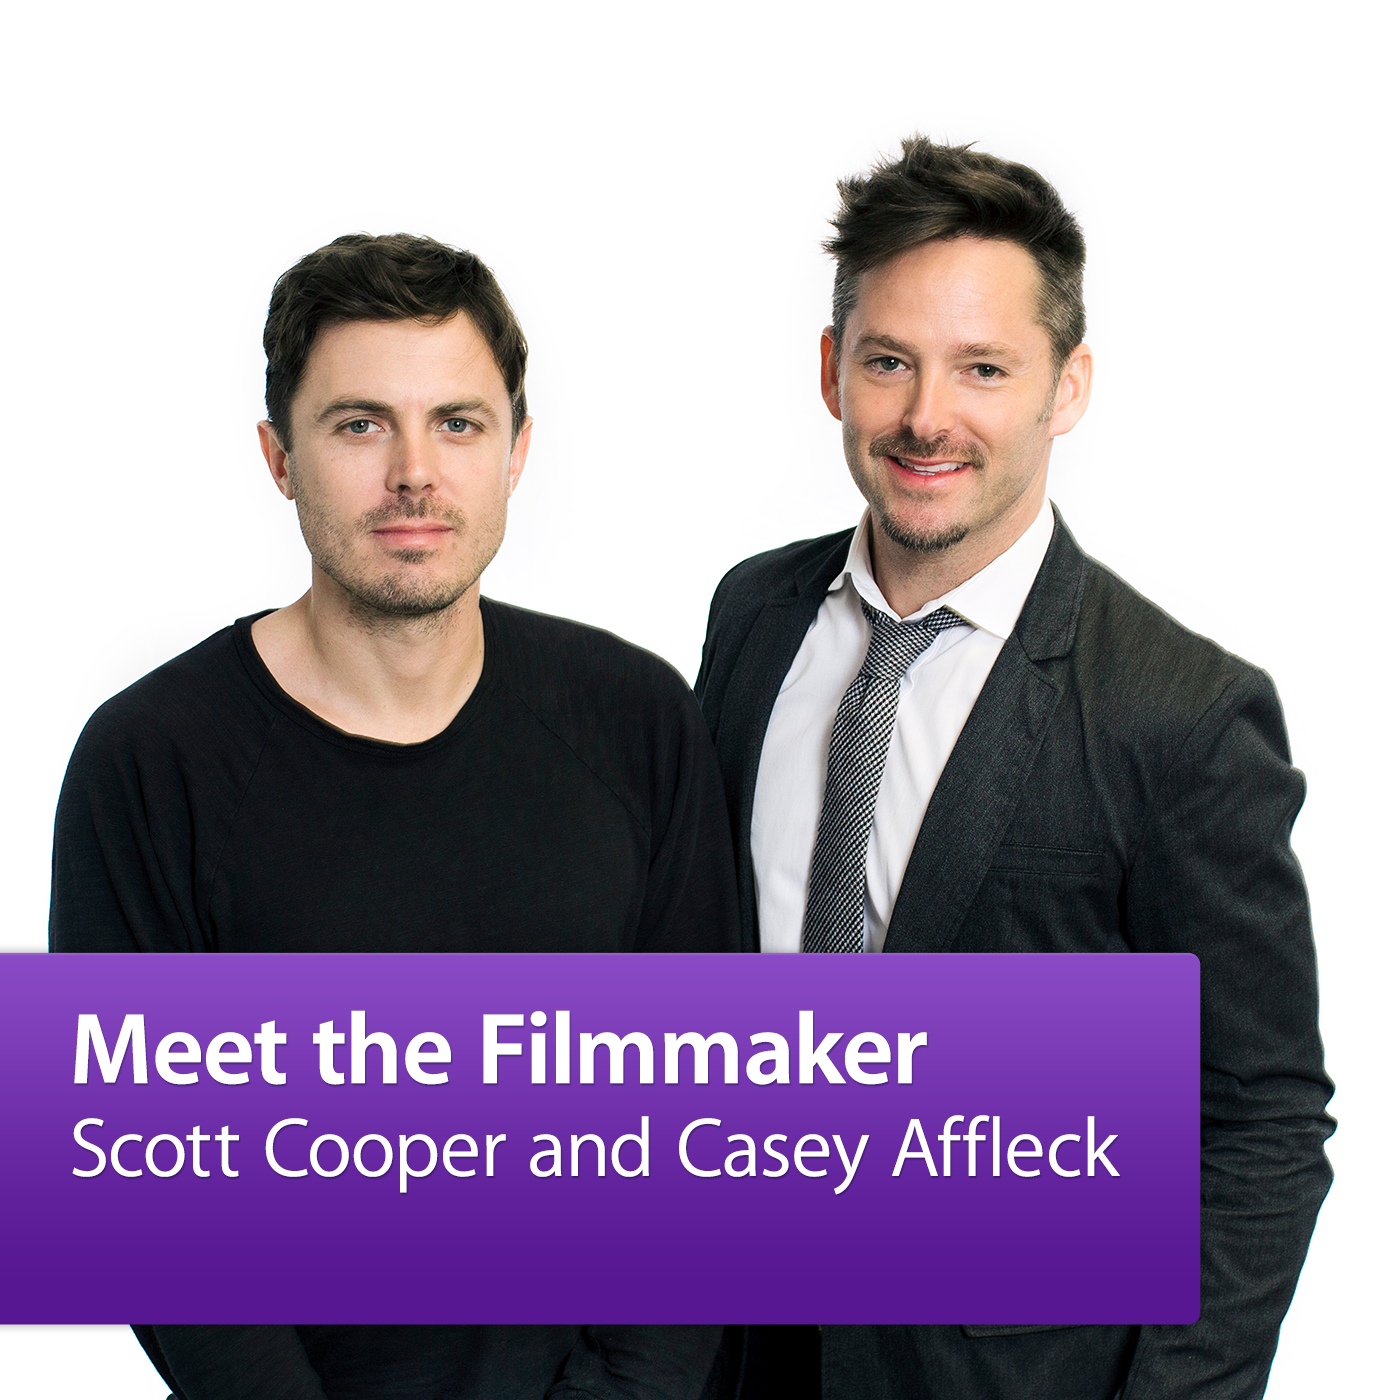 Scott Cooper and Casey Affleck: Meet the Filmmaker